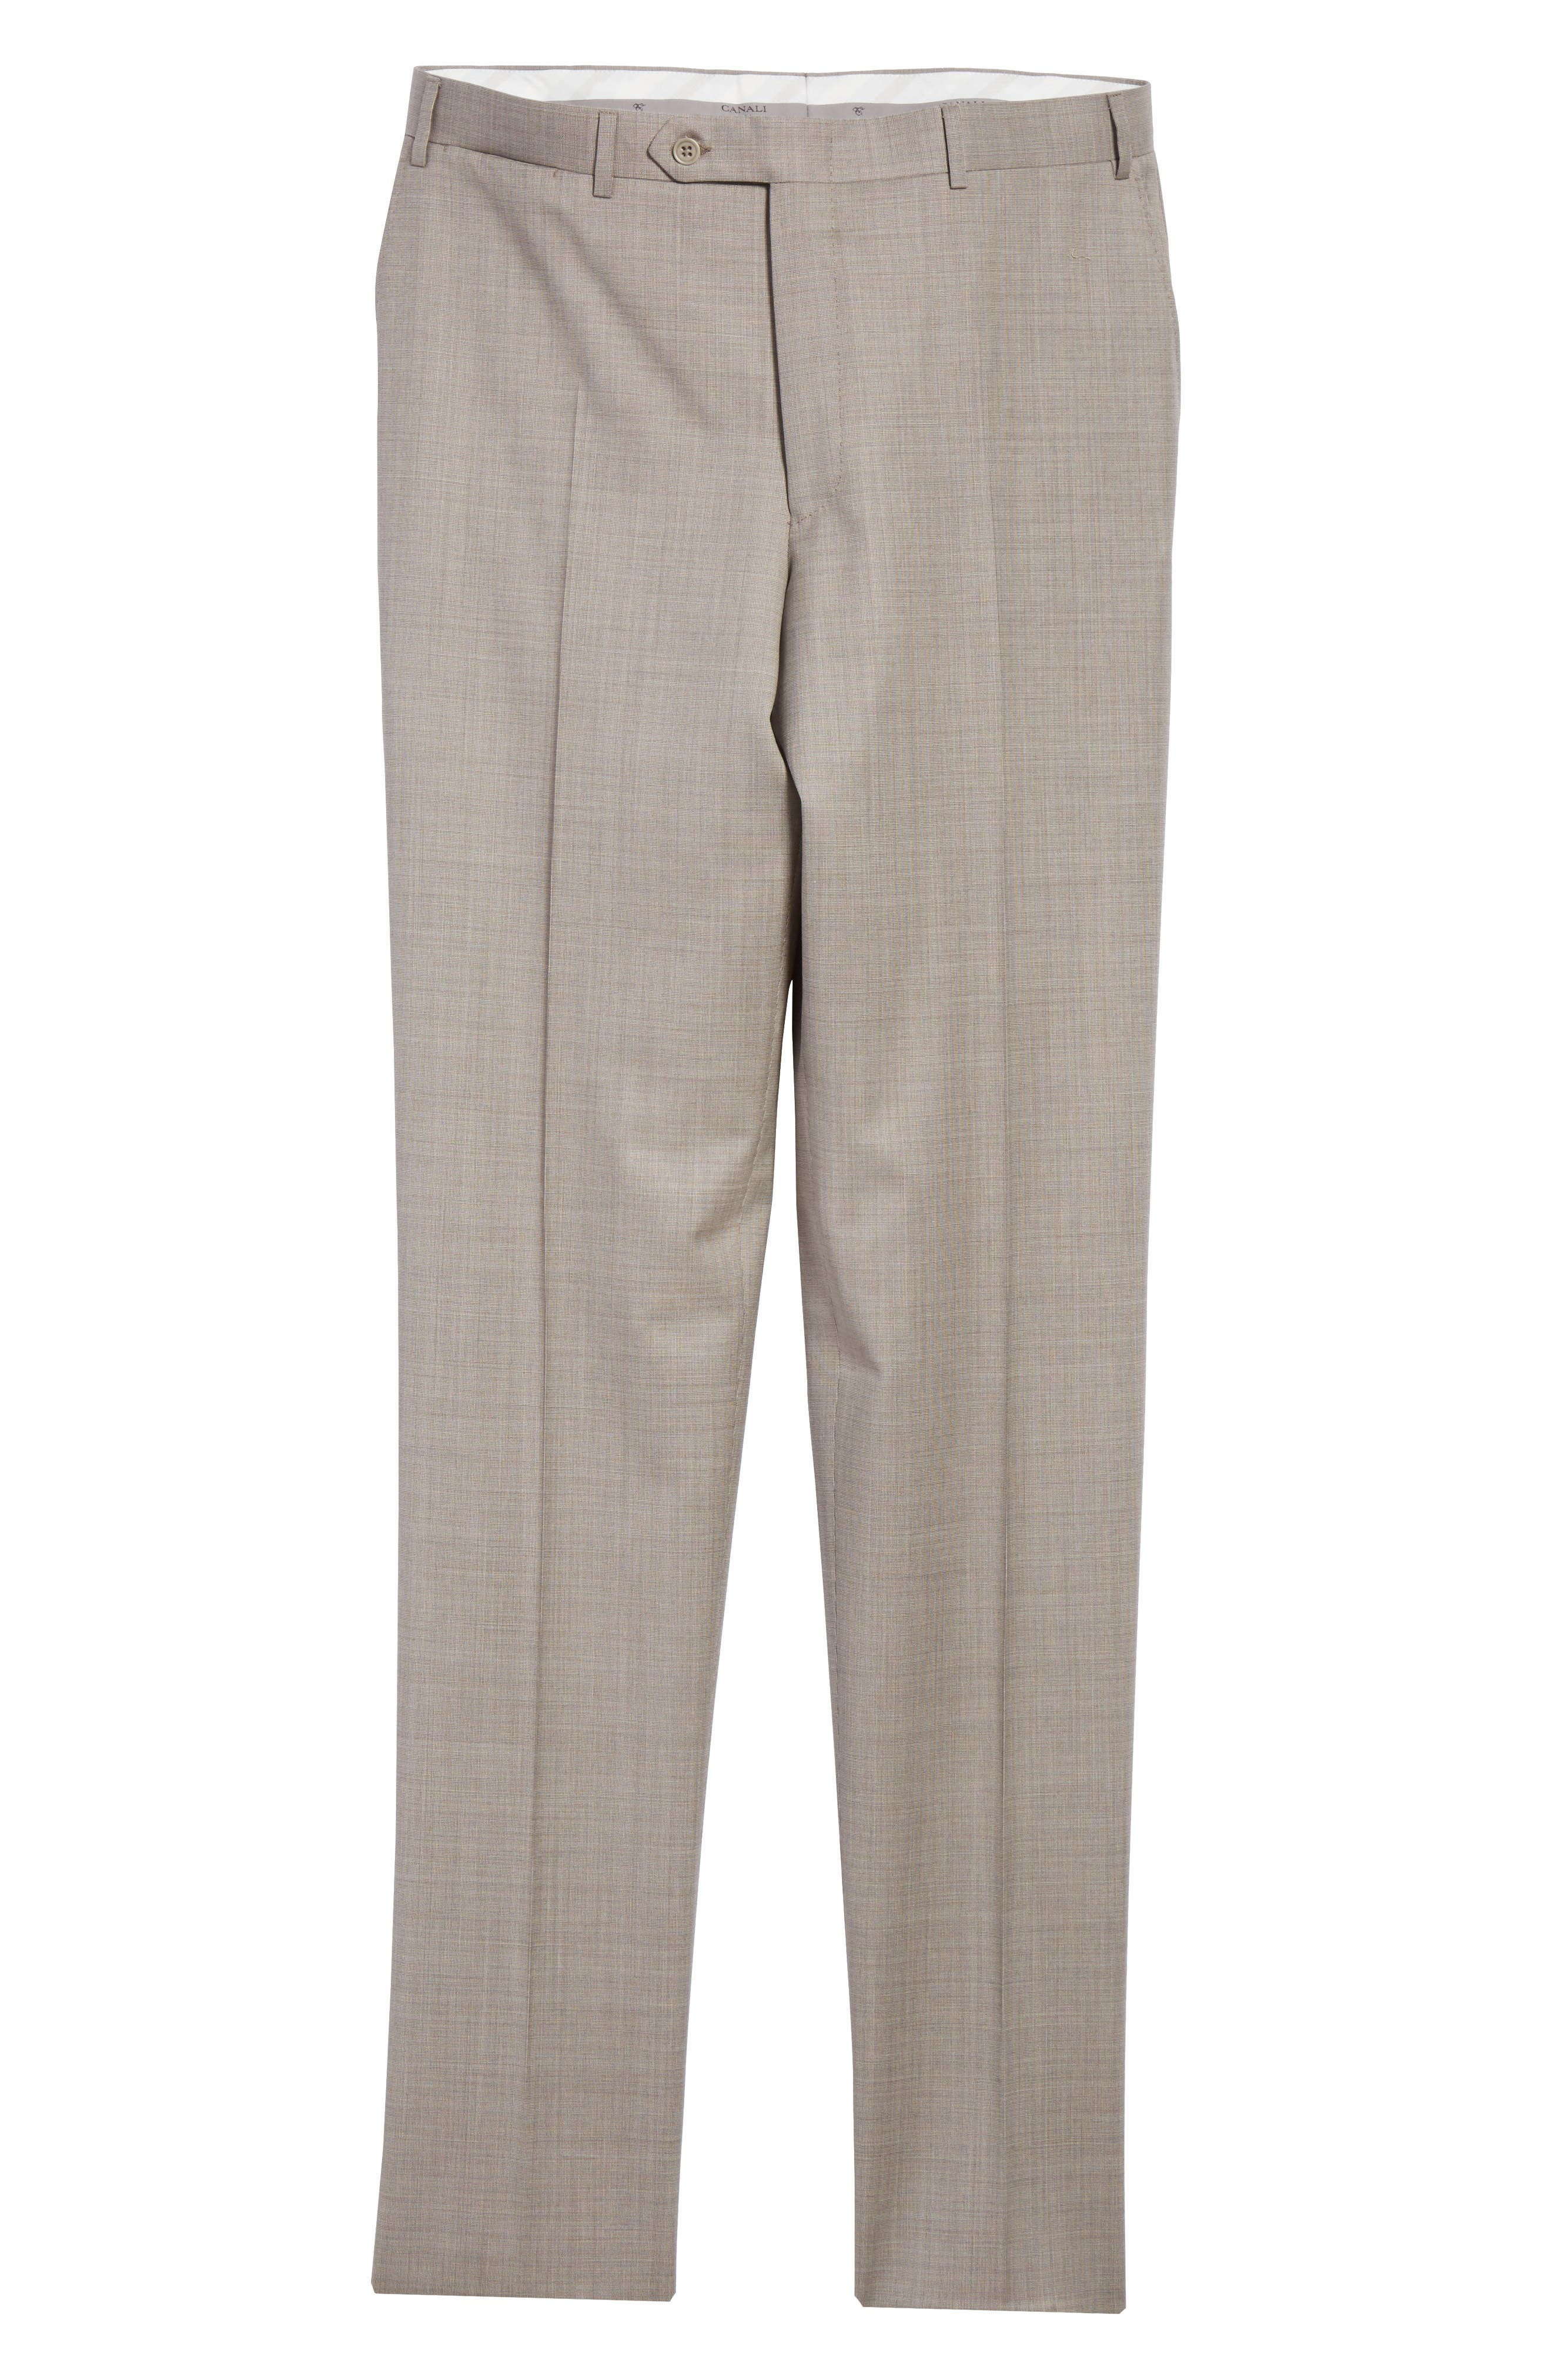 Flat Front Solid Wool Trousers,                             Alternate thumbnail 6, color,                             252